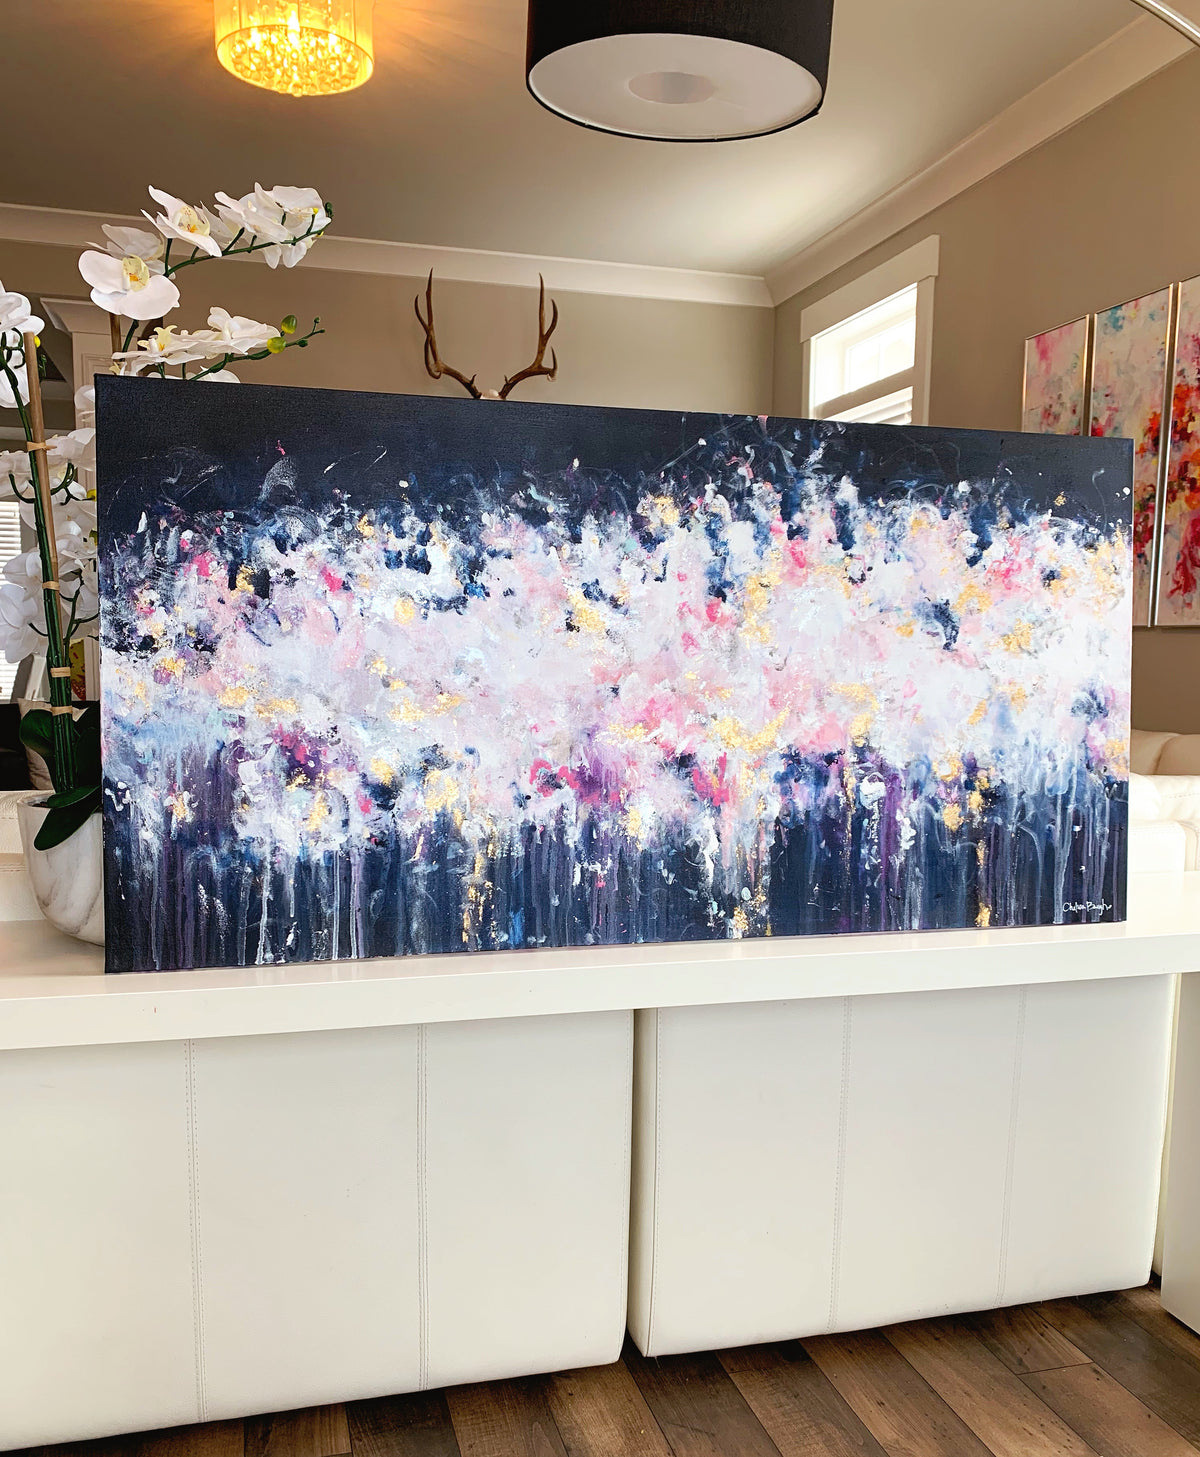 "'The Other Side' 24x48"" Original Painting"